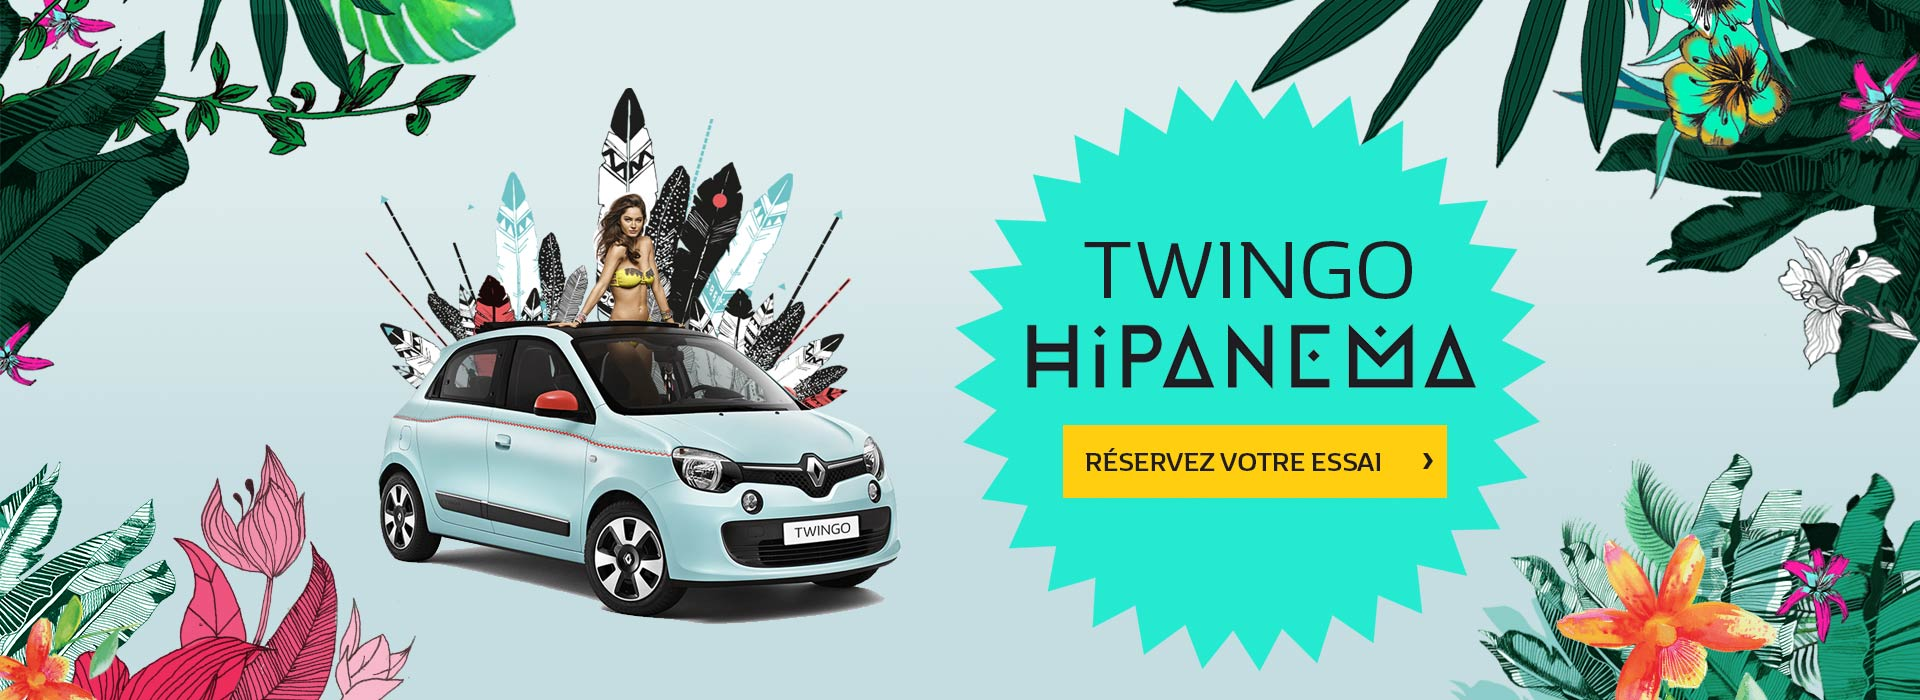 promotion Twingo Hipanema